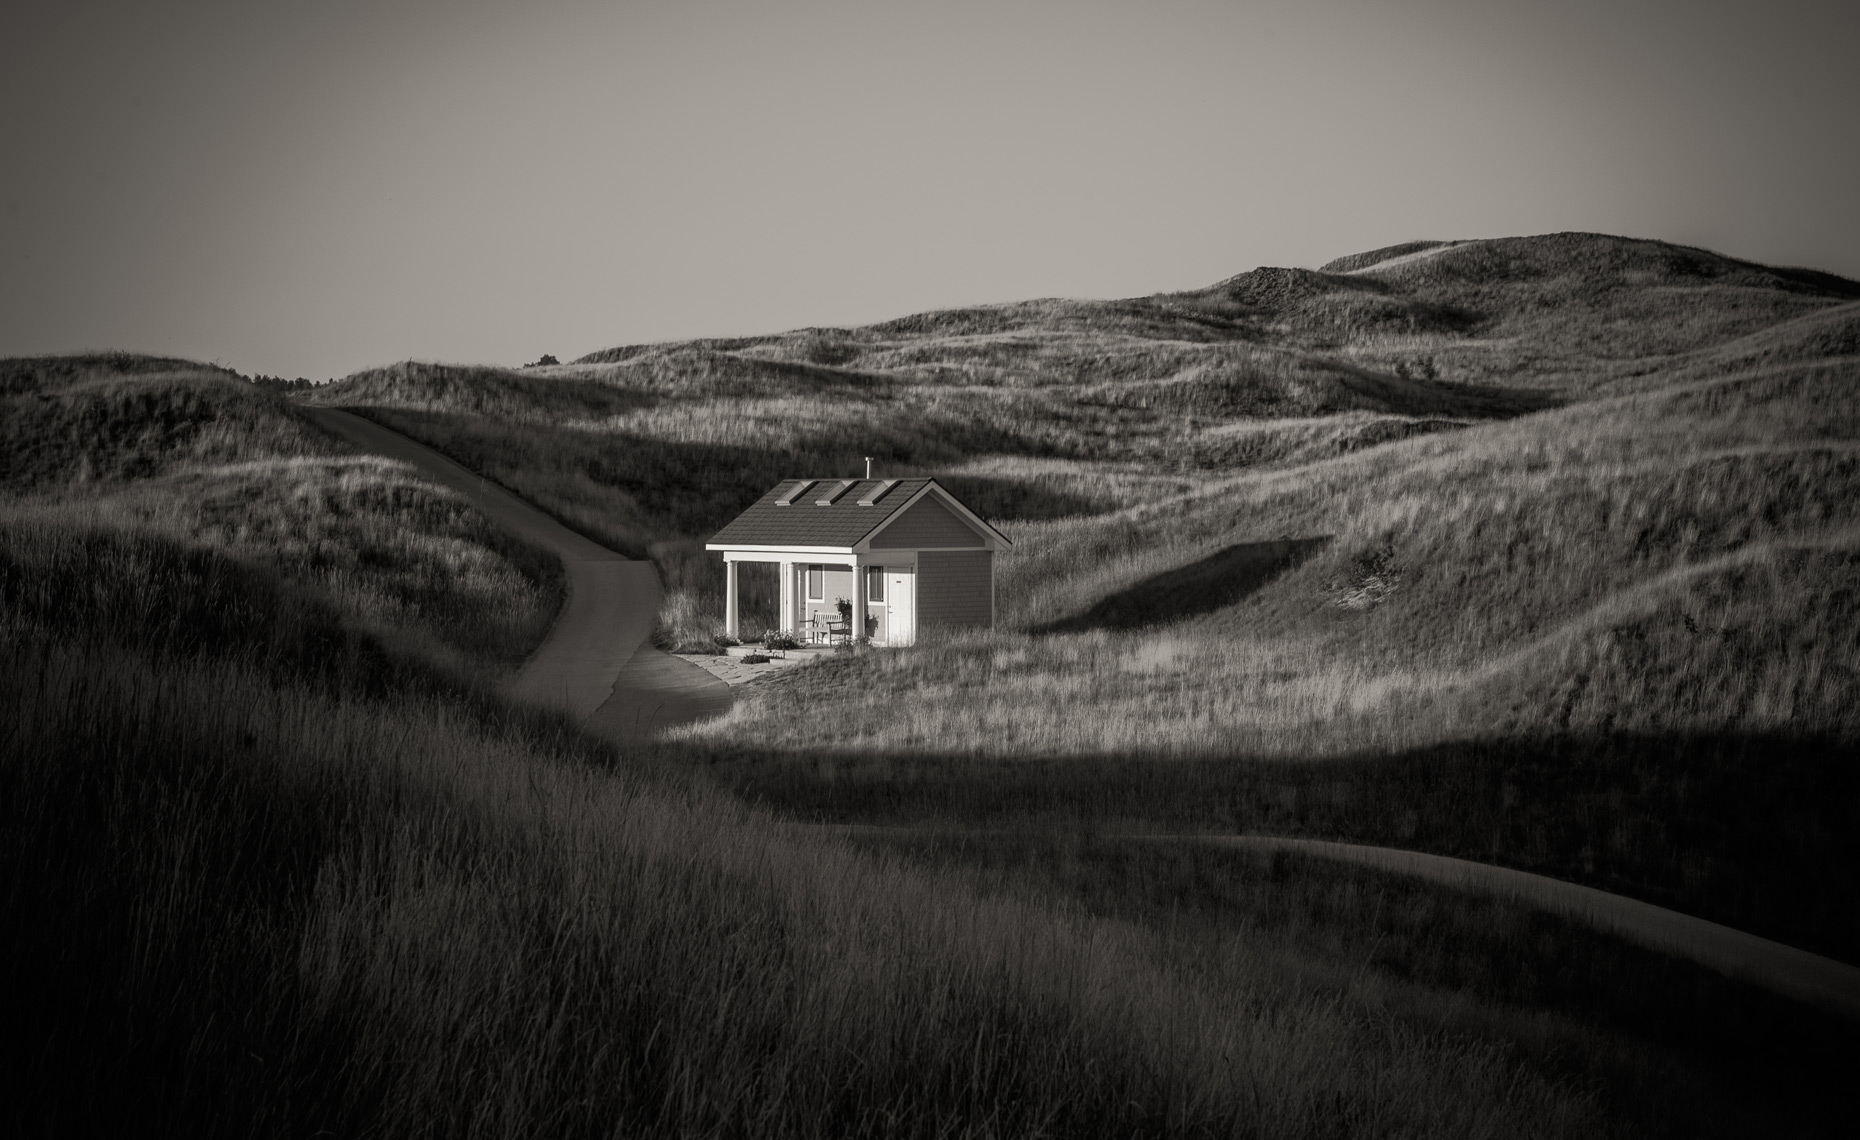 Neil-Colton-photographer-arcadia-bluffs-gc-fine-art-141-wr